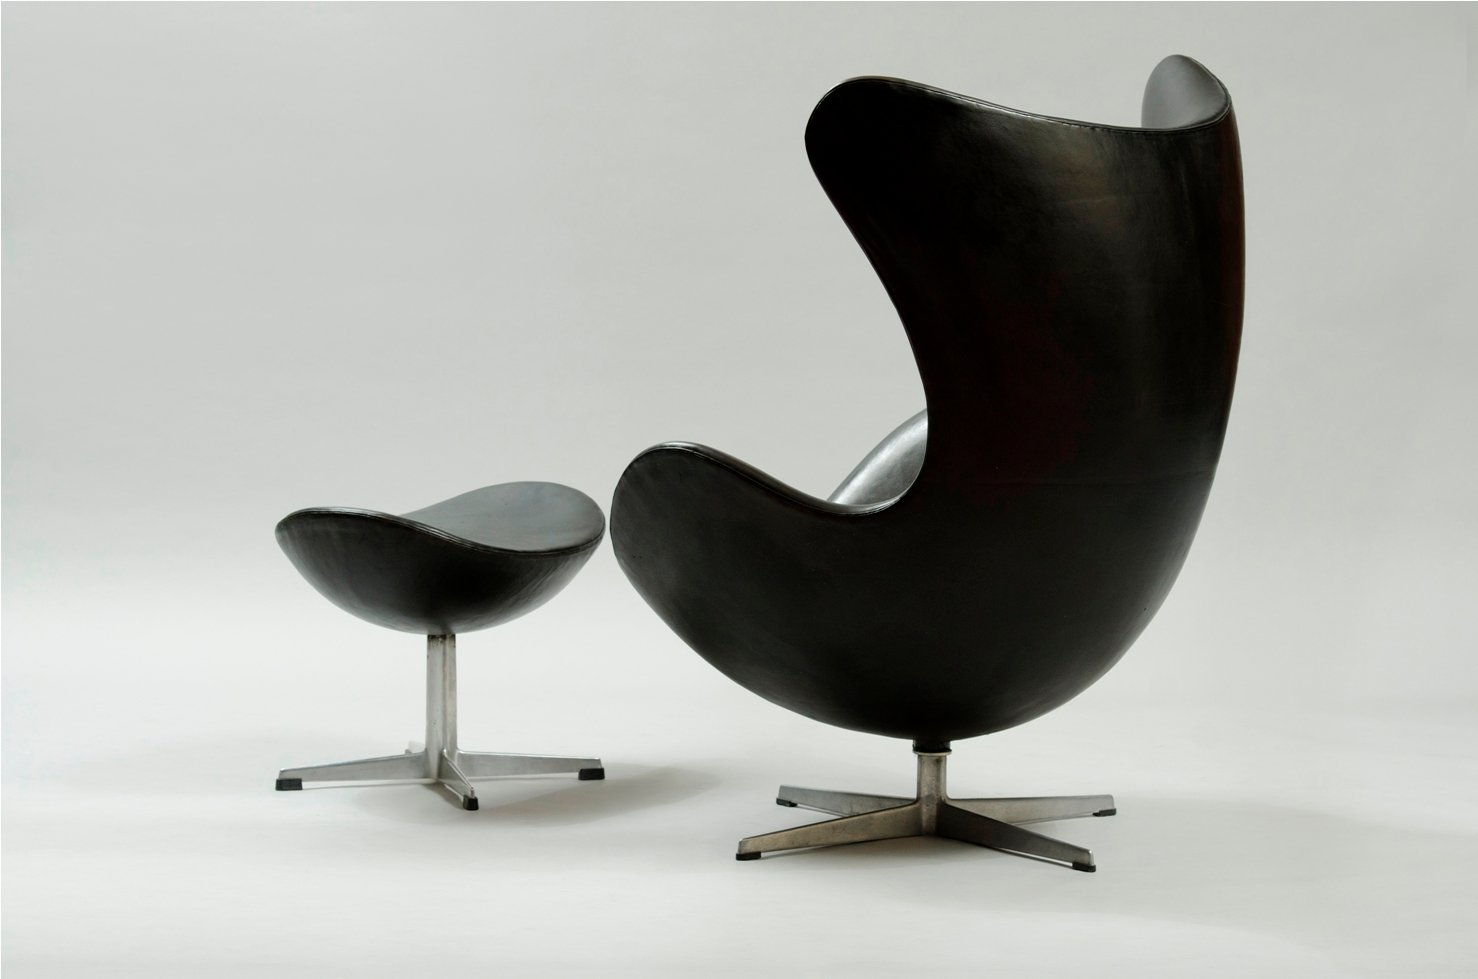 egg chair and ottoman by arne jacobsen for fritz hansen. Black Bedroom Furniture Sets. Home Design Ideas